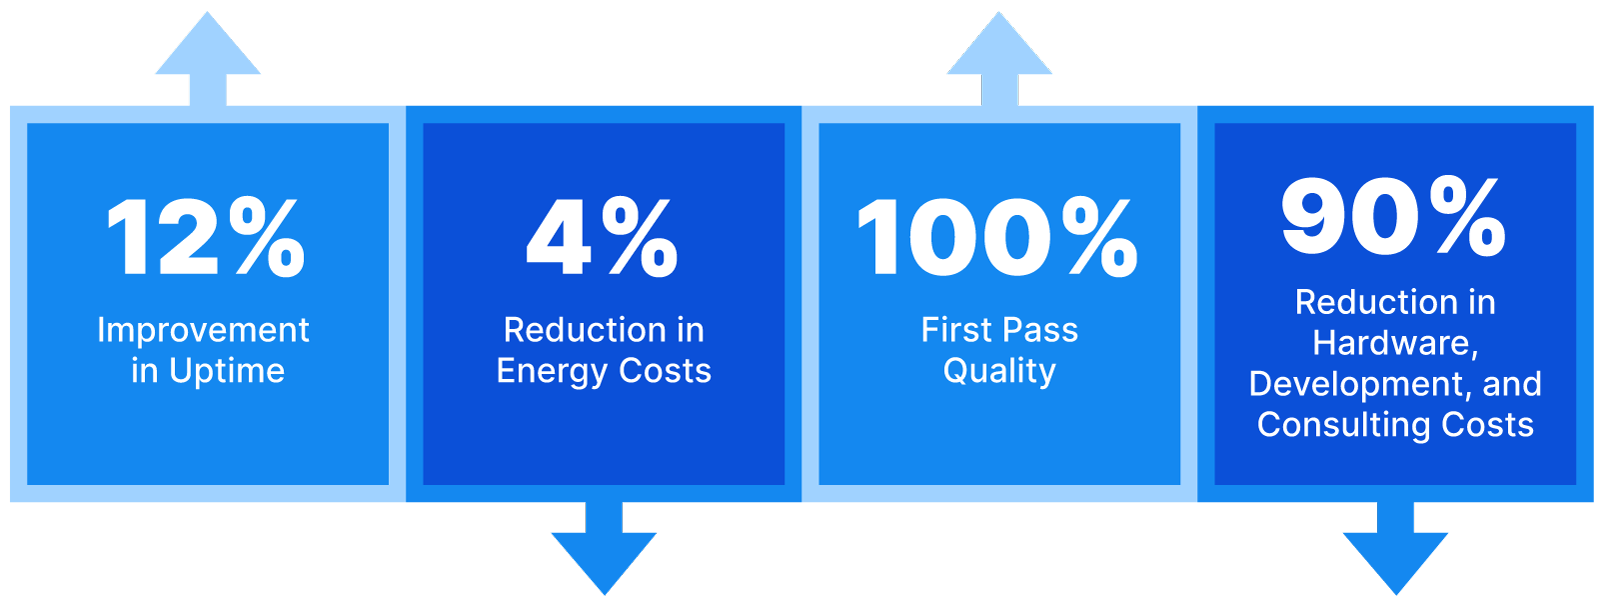 Our predictive technology produces the results you're looking to achieve, whether it's improved uptime, reduced energy costs, enhanced first pass quality, reduced consulting costs, and many more impactful KPIs.